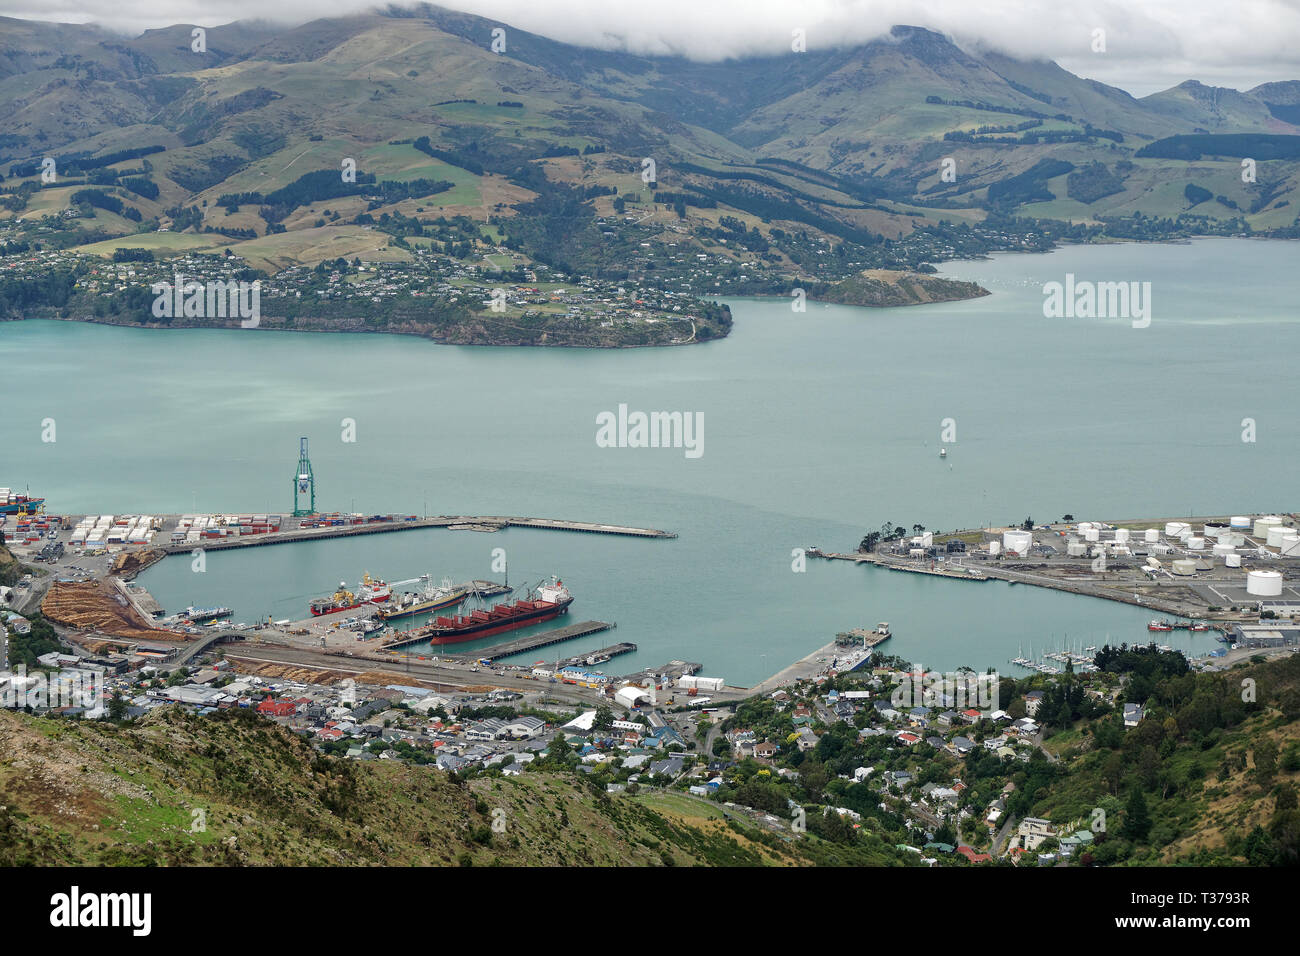 Lyttelton harbour from the Port Hills, New Zealand. Pine trees ready for export. - Stock Image